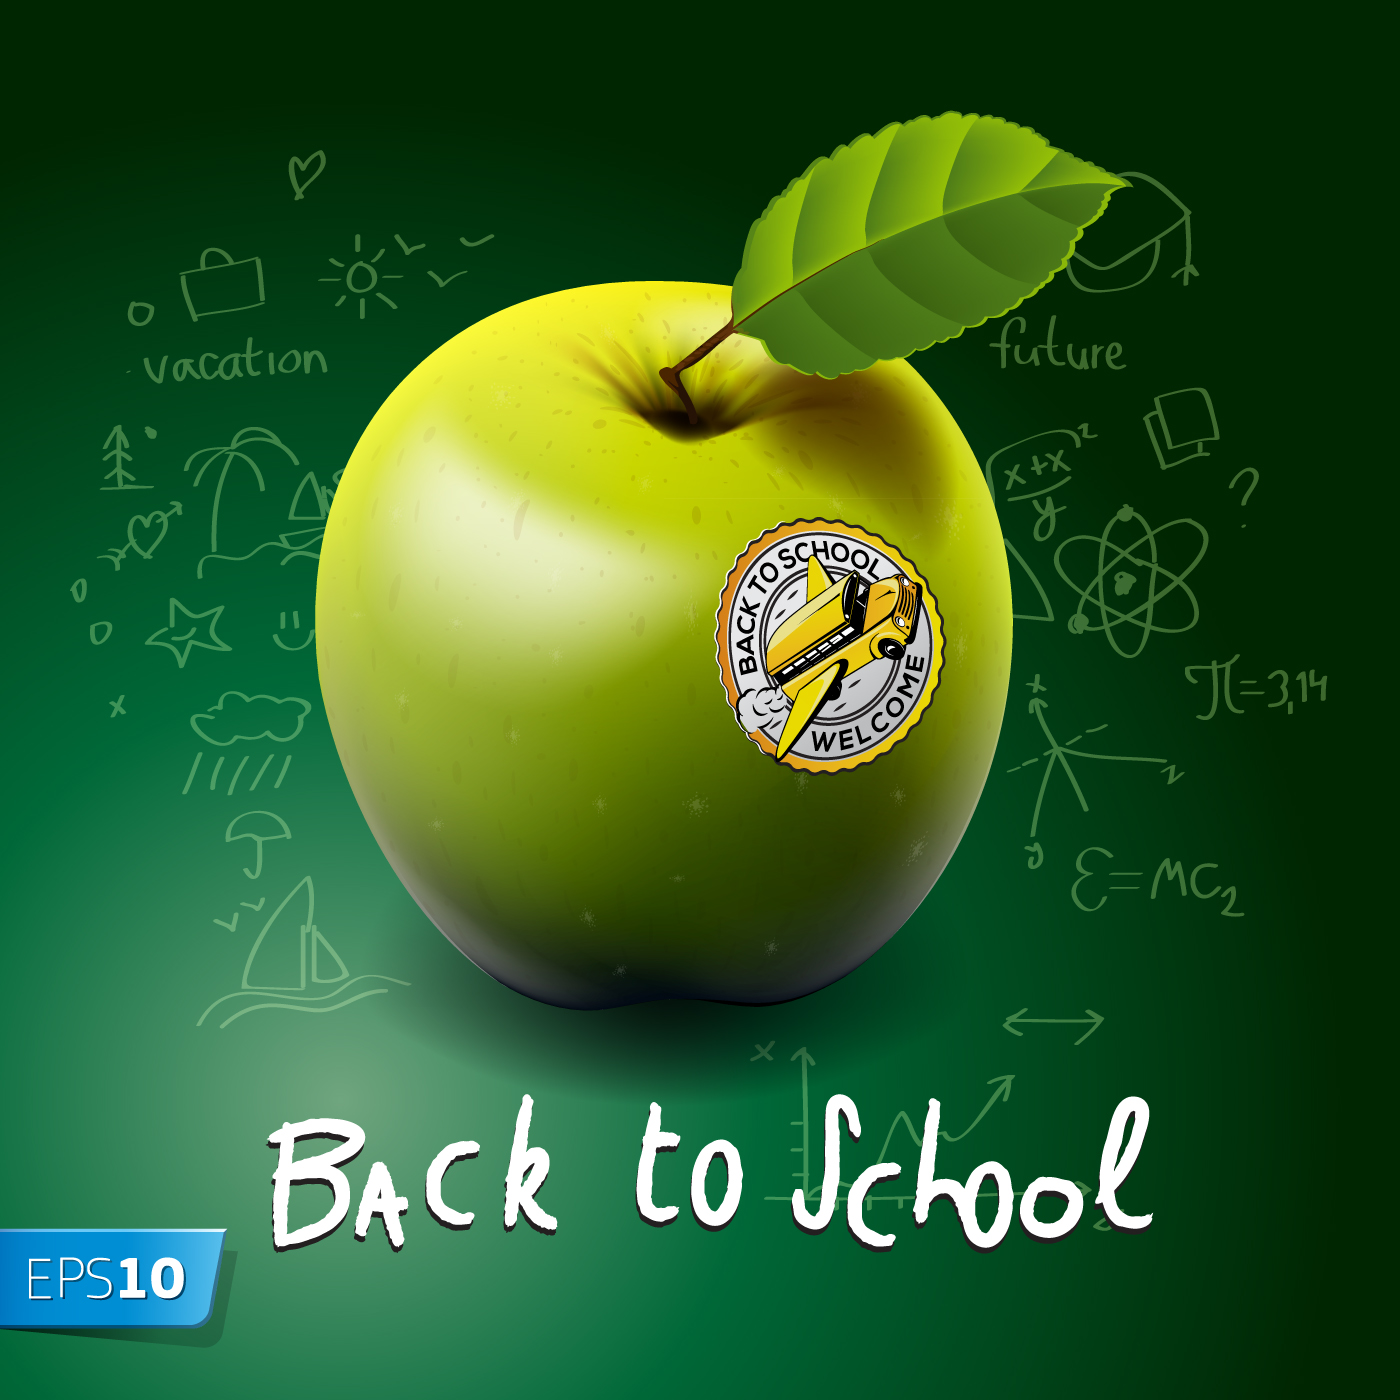 Back to School style backgrounds